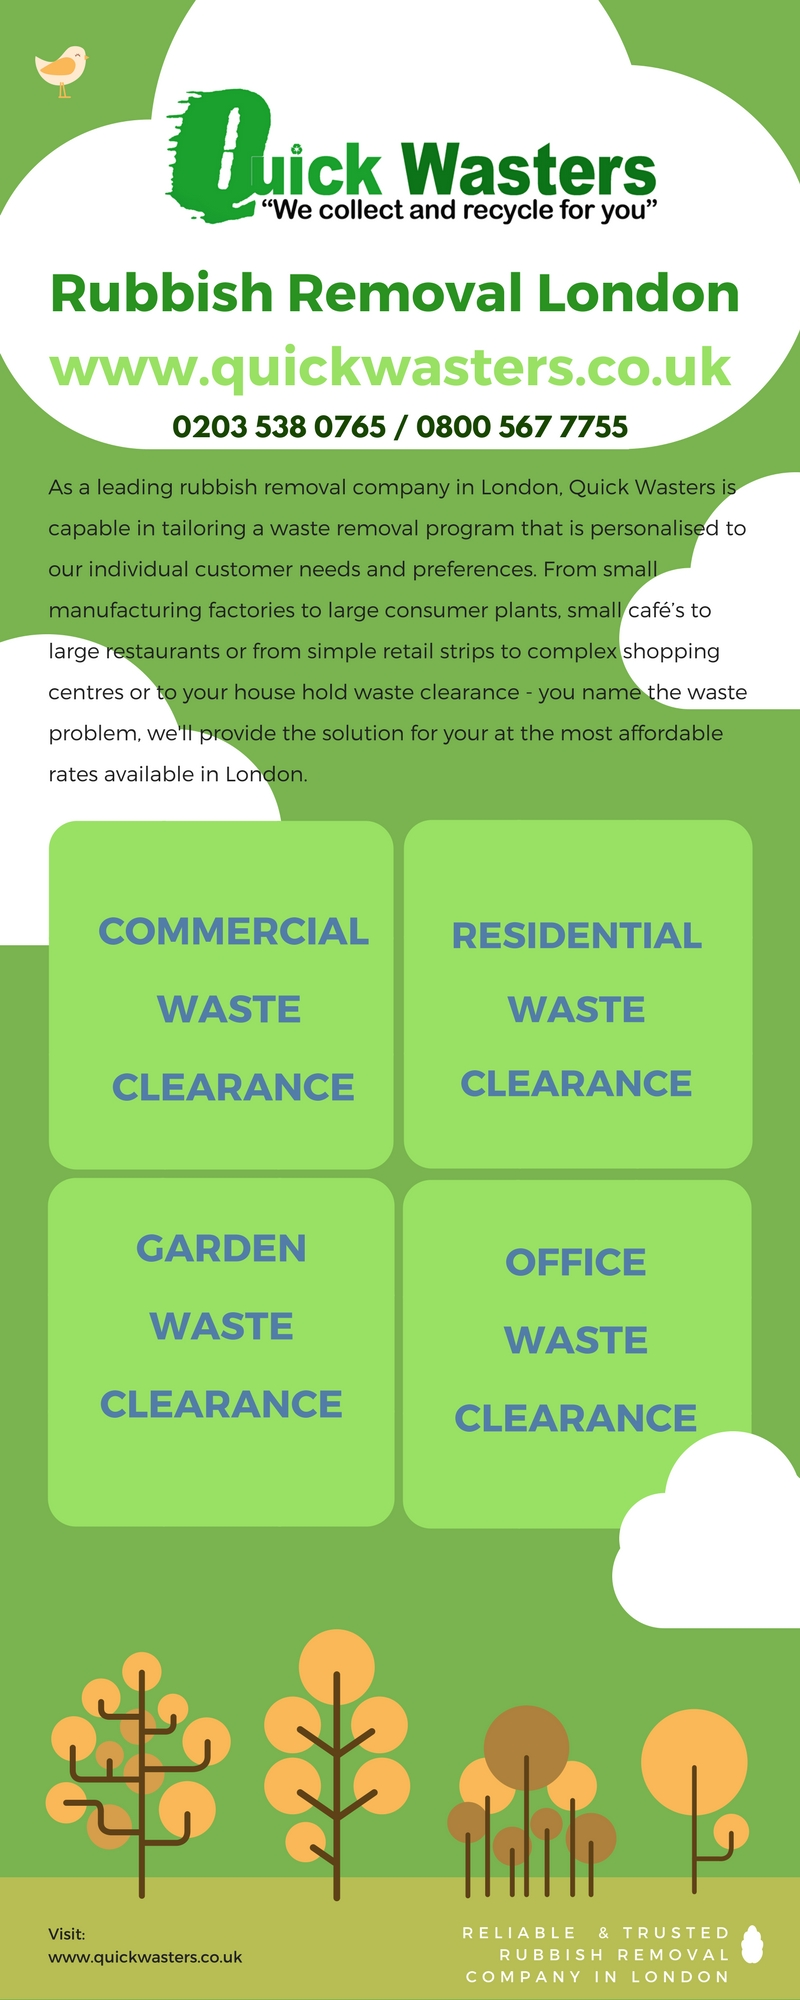 Quickwasters – Rubbish Removal Company London